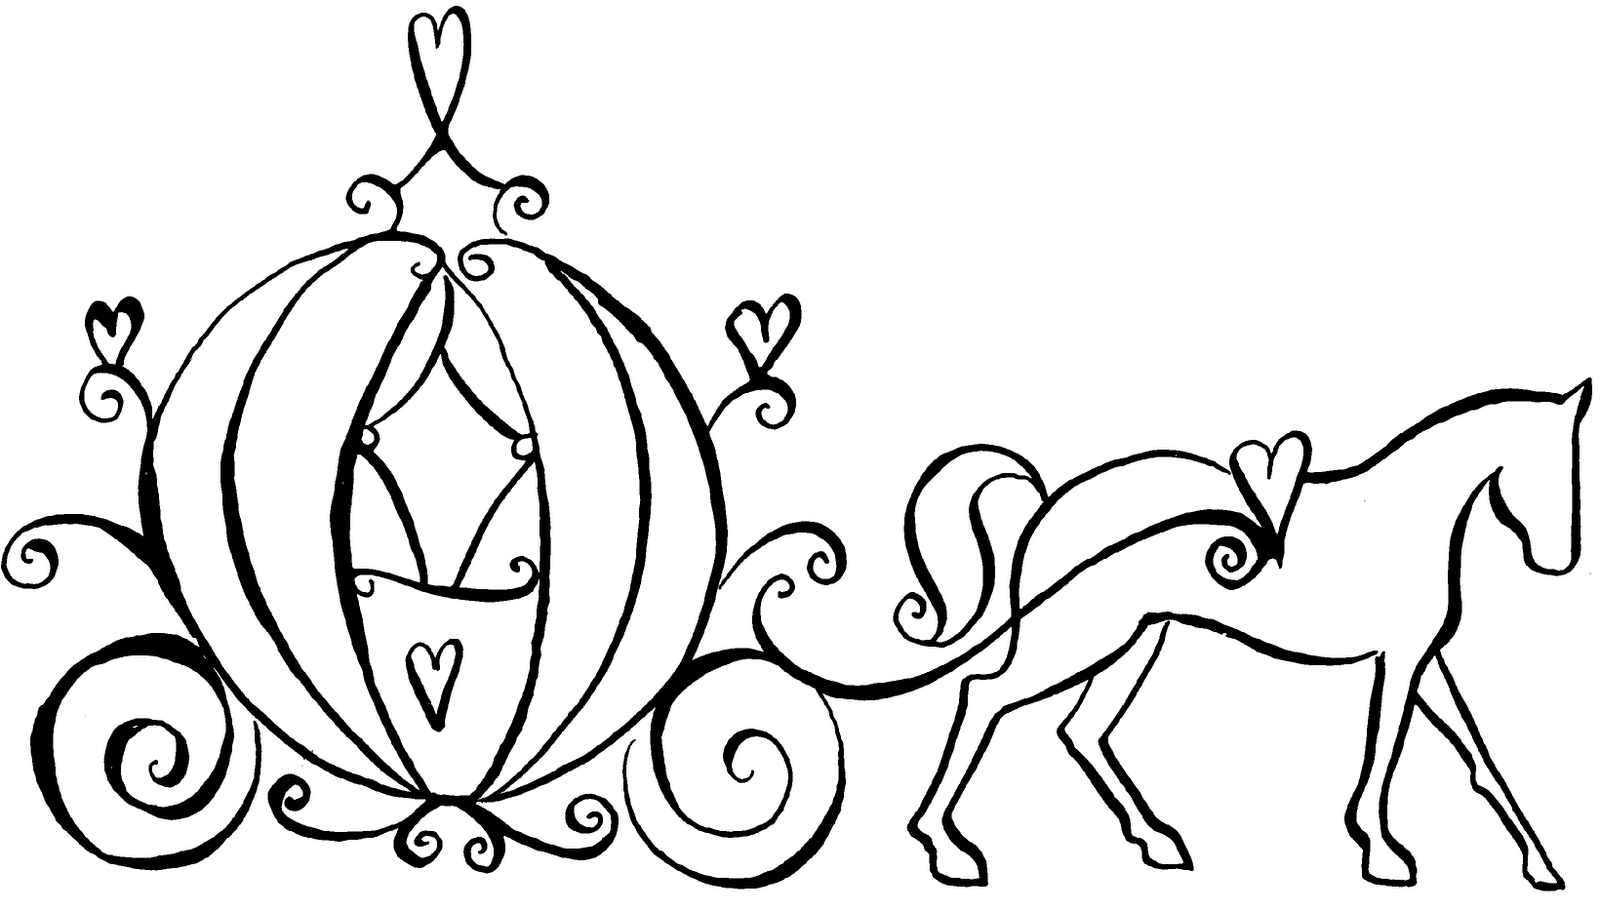 Cinderella Carriage Drawing at GetDrawings.com | Free for personal ...